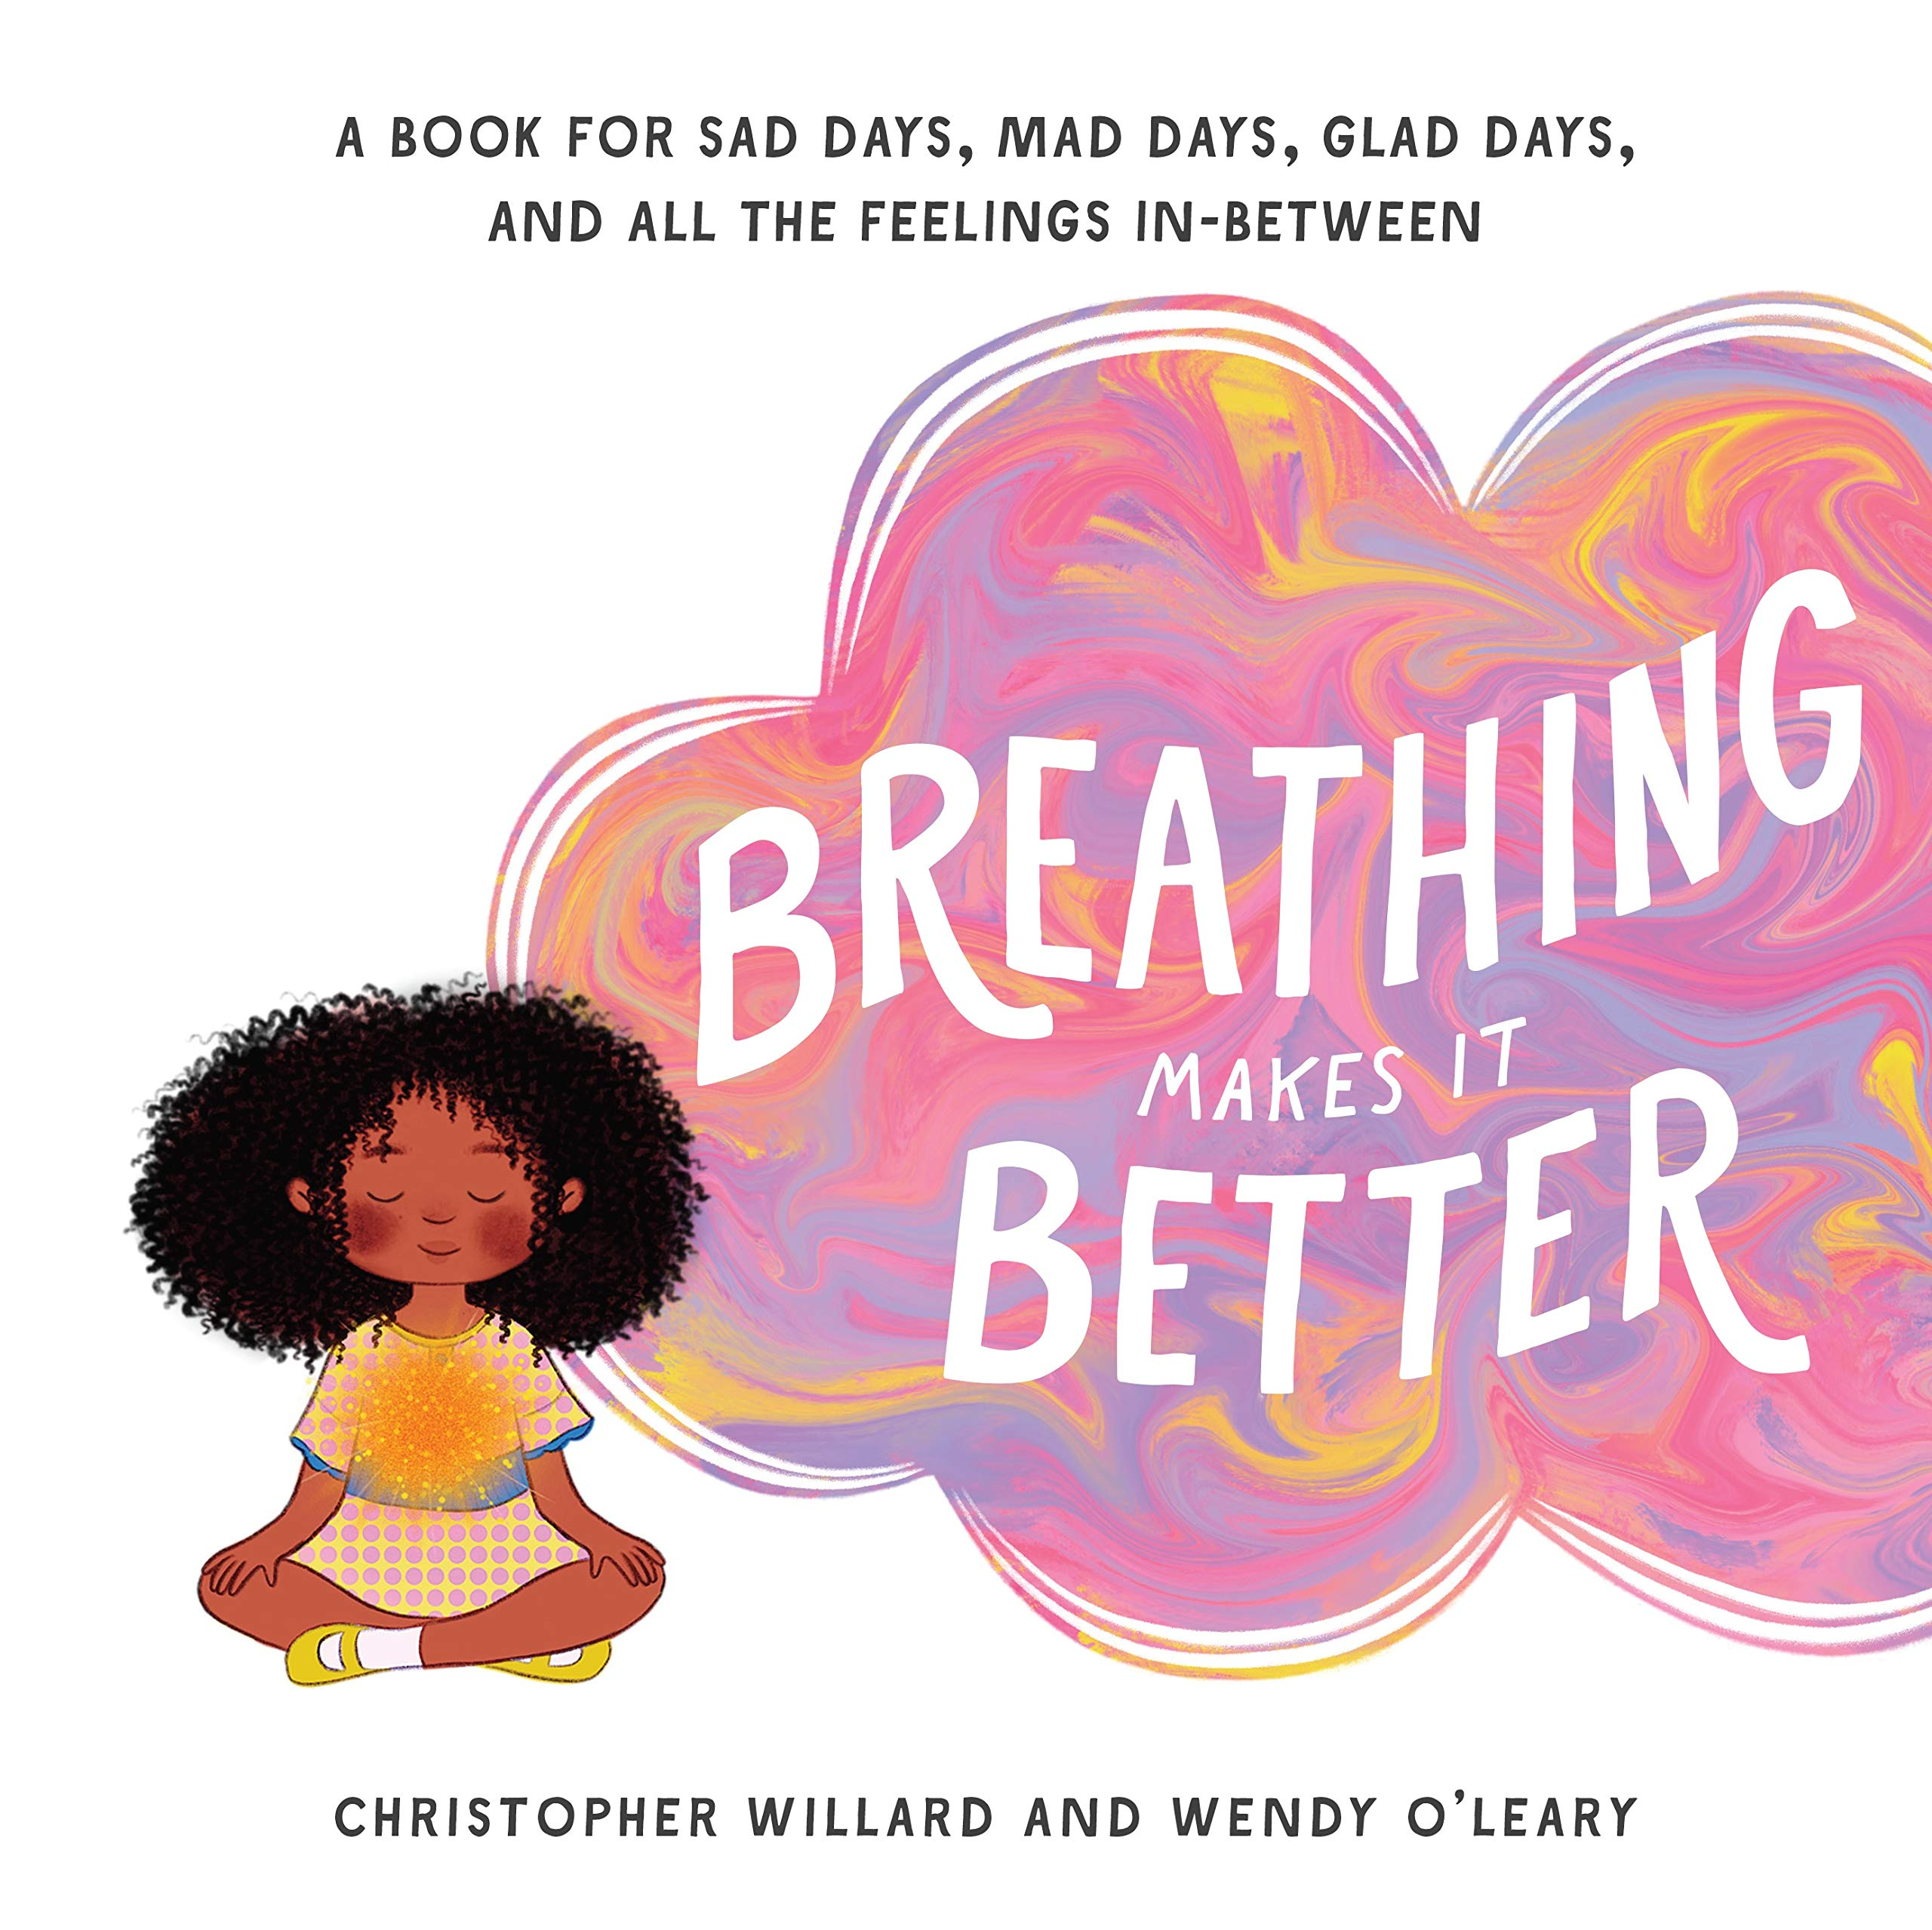 Breathing Makes It Better: A Book for Sad Days, Mad Days, Glad Days, and All the Feelings In-Between